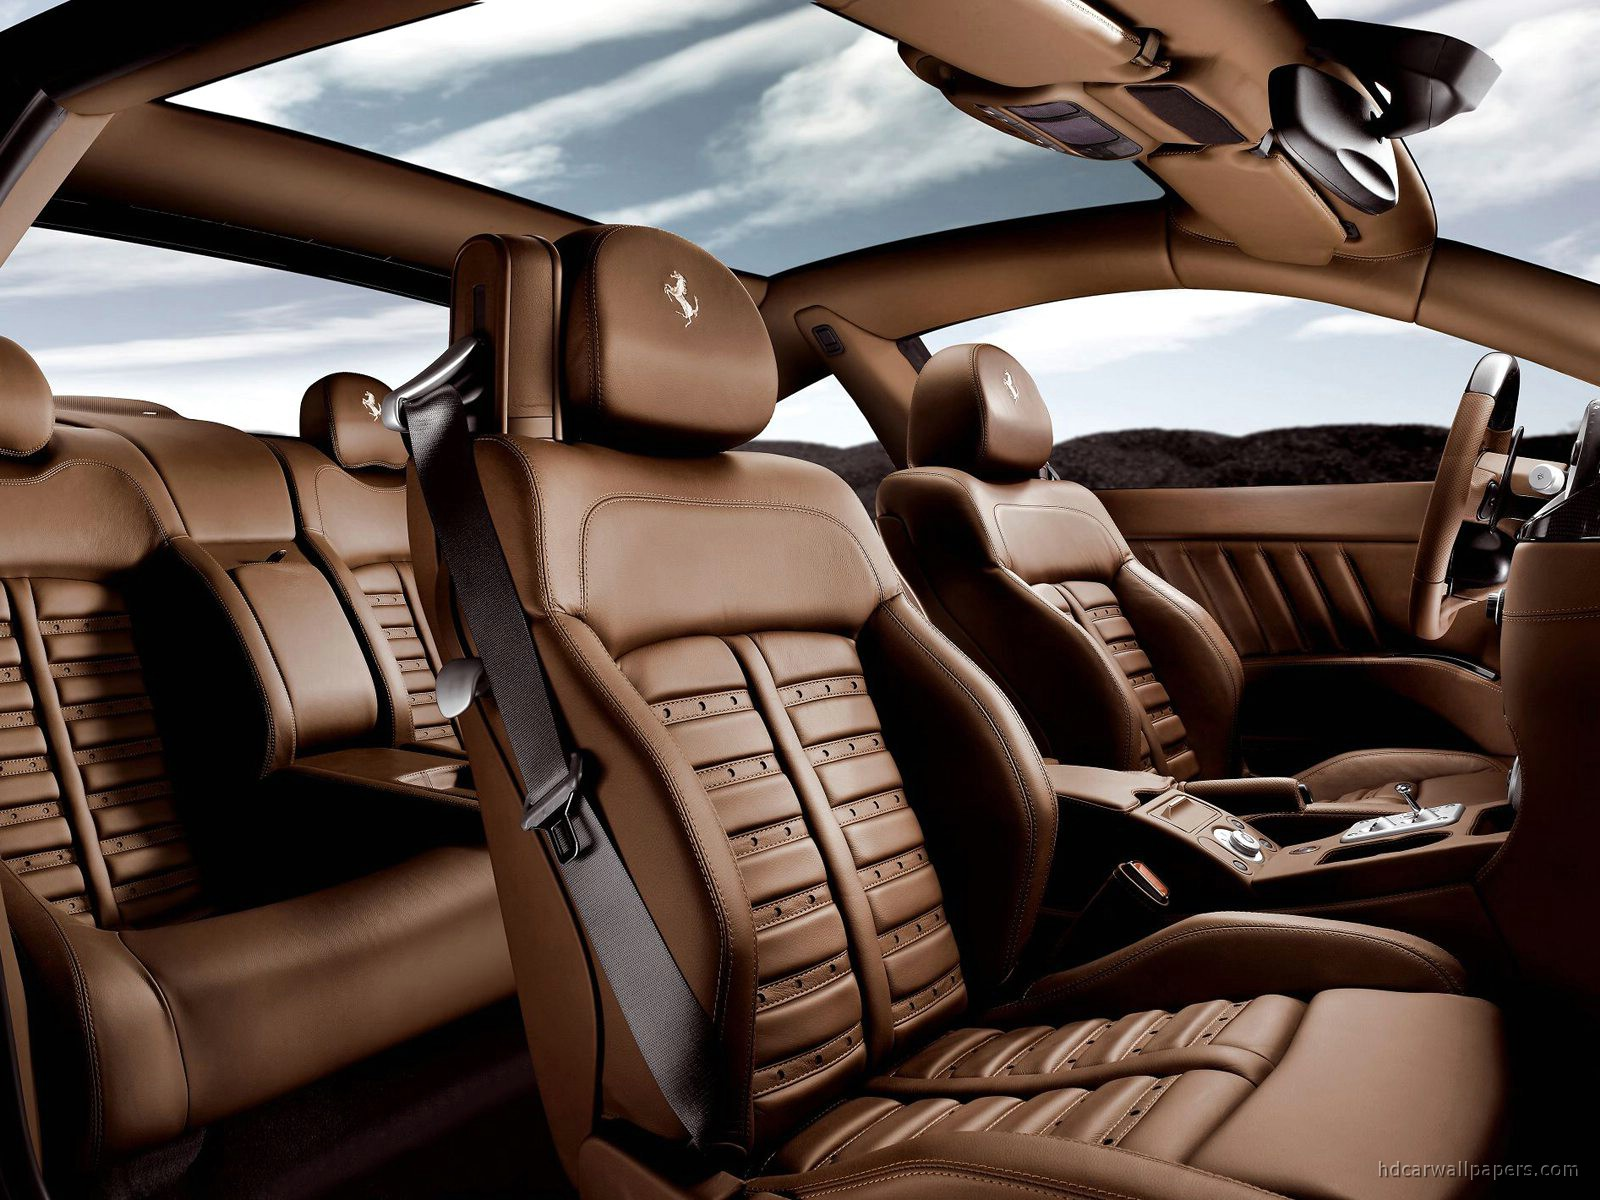 ferrai-scaglietti-black-interior-wallpaper-wp500299